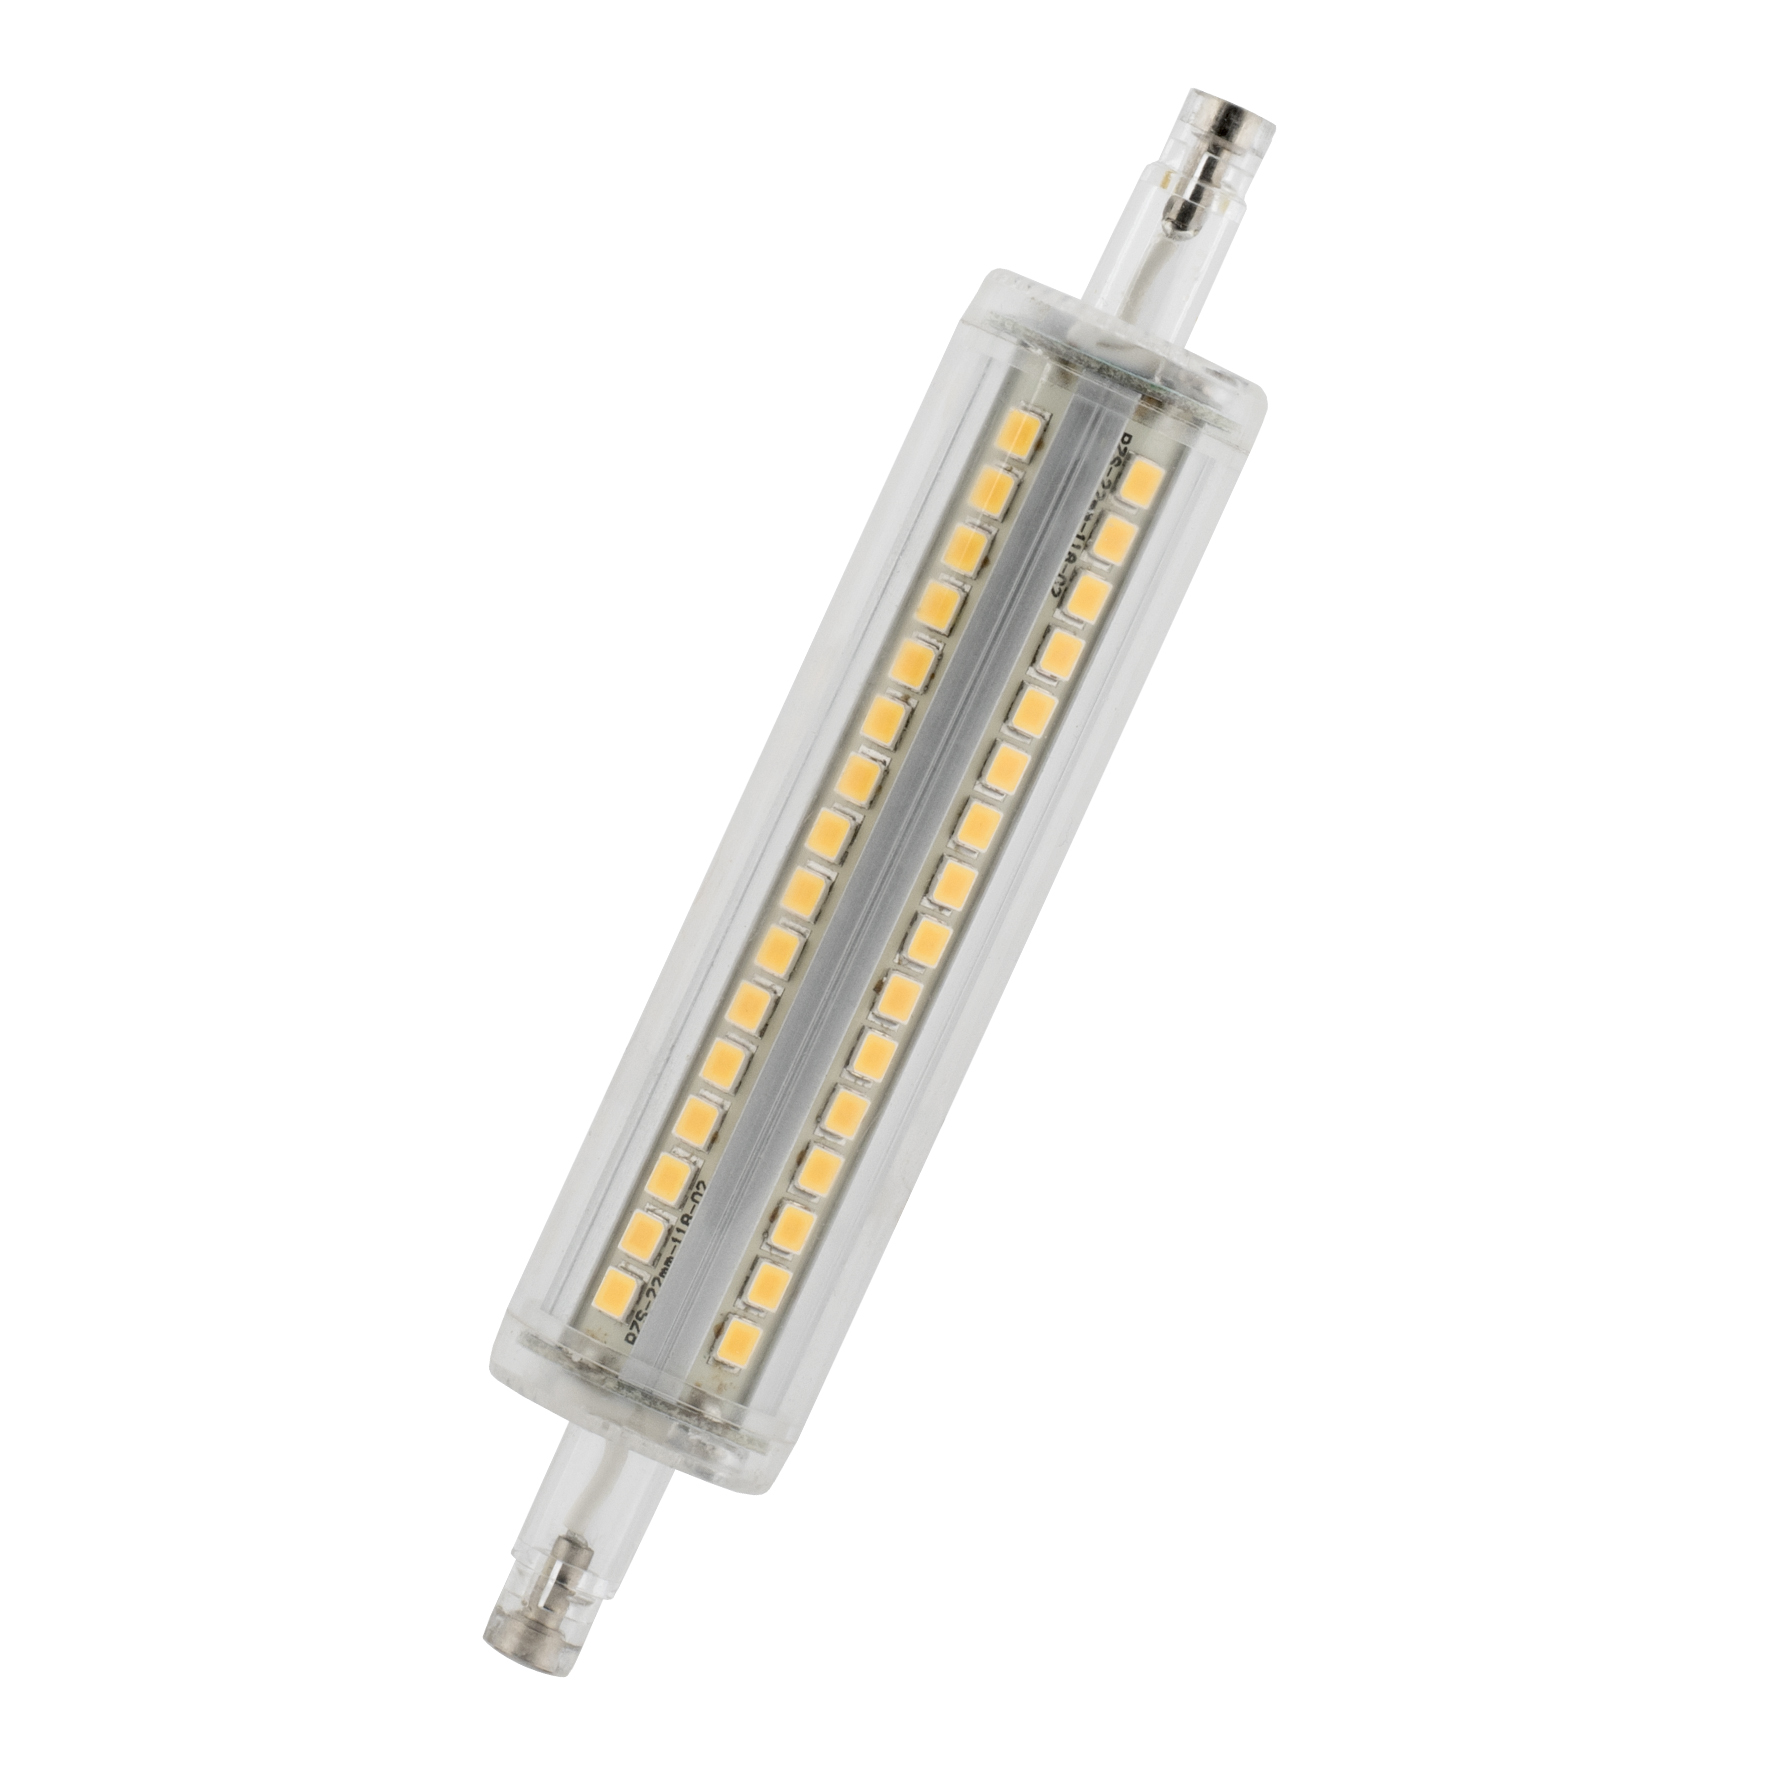 R7s 80100040418 R7s Lampes Led Lampes ProduitsBailey 80100040418 Led eEHYD29WI